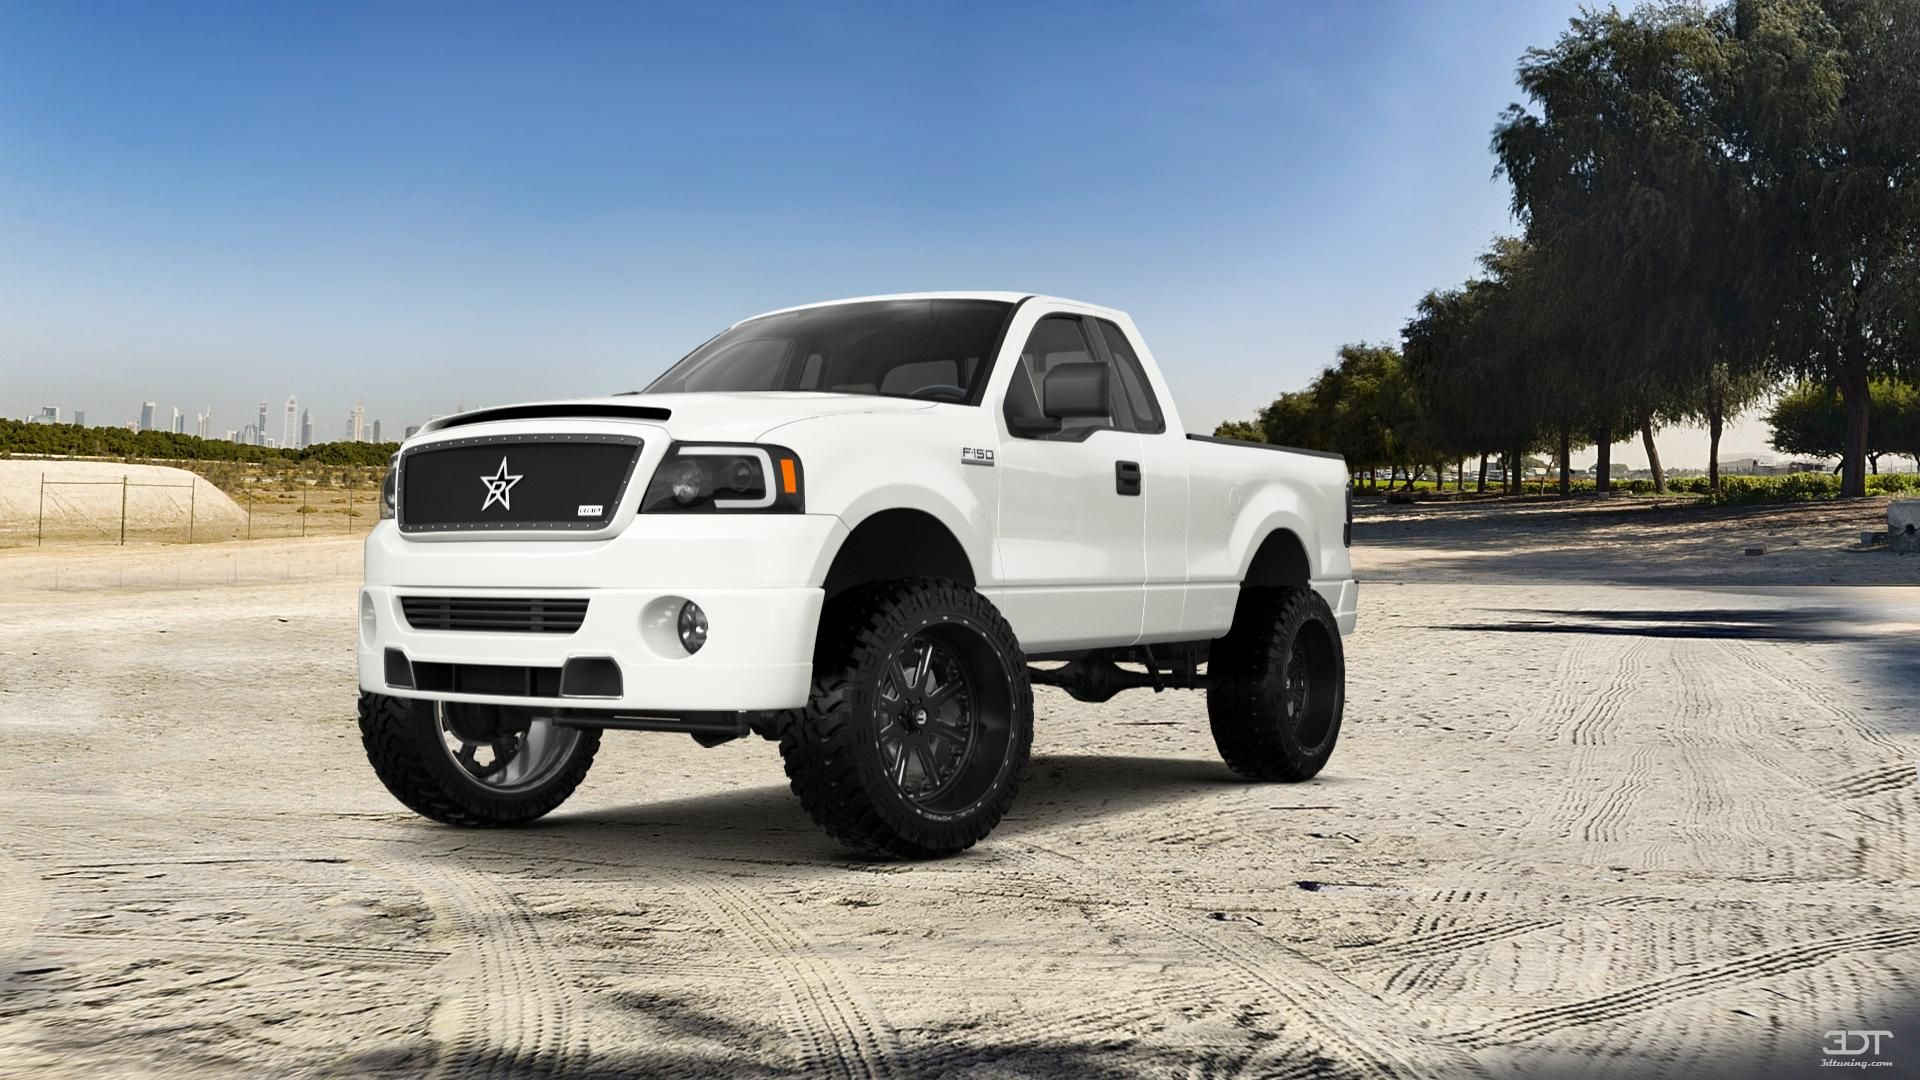 Checkout My Tuning Ford F 150 2008 At 3dtuning 3dtuning Tuning Ford Ford F150 Pickup Trucks